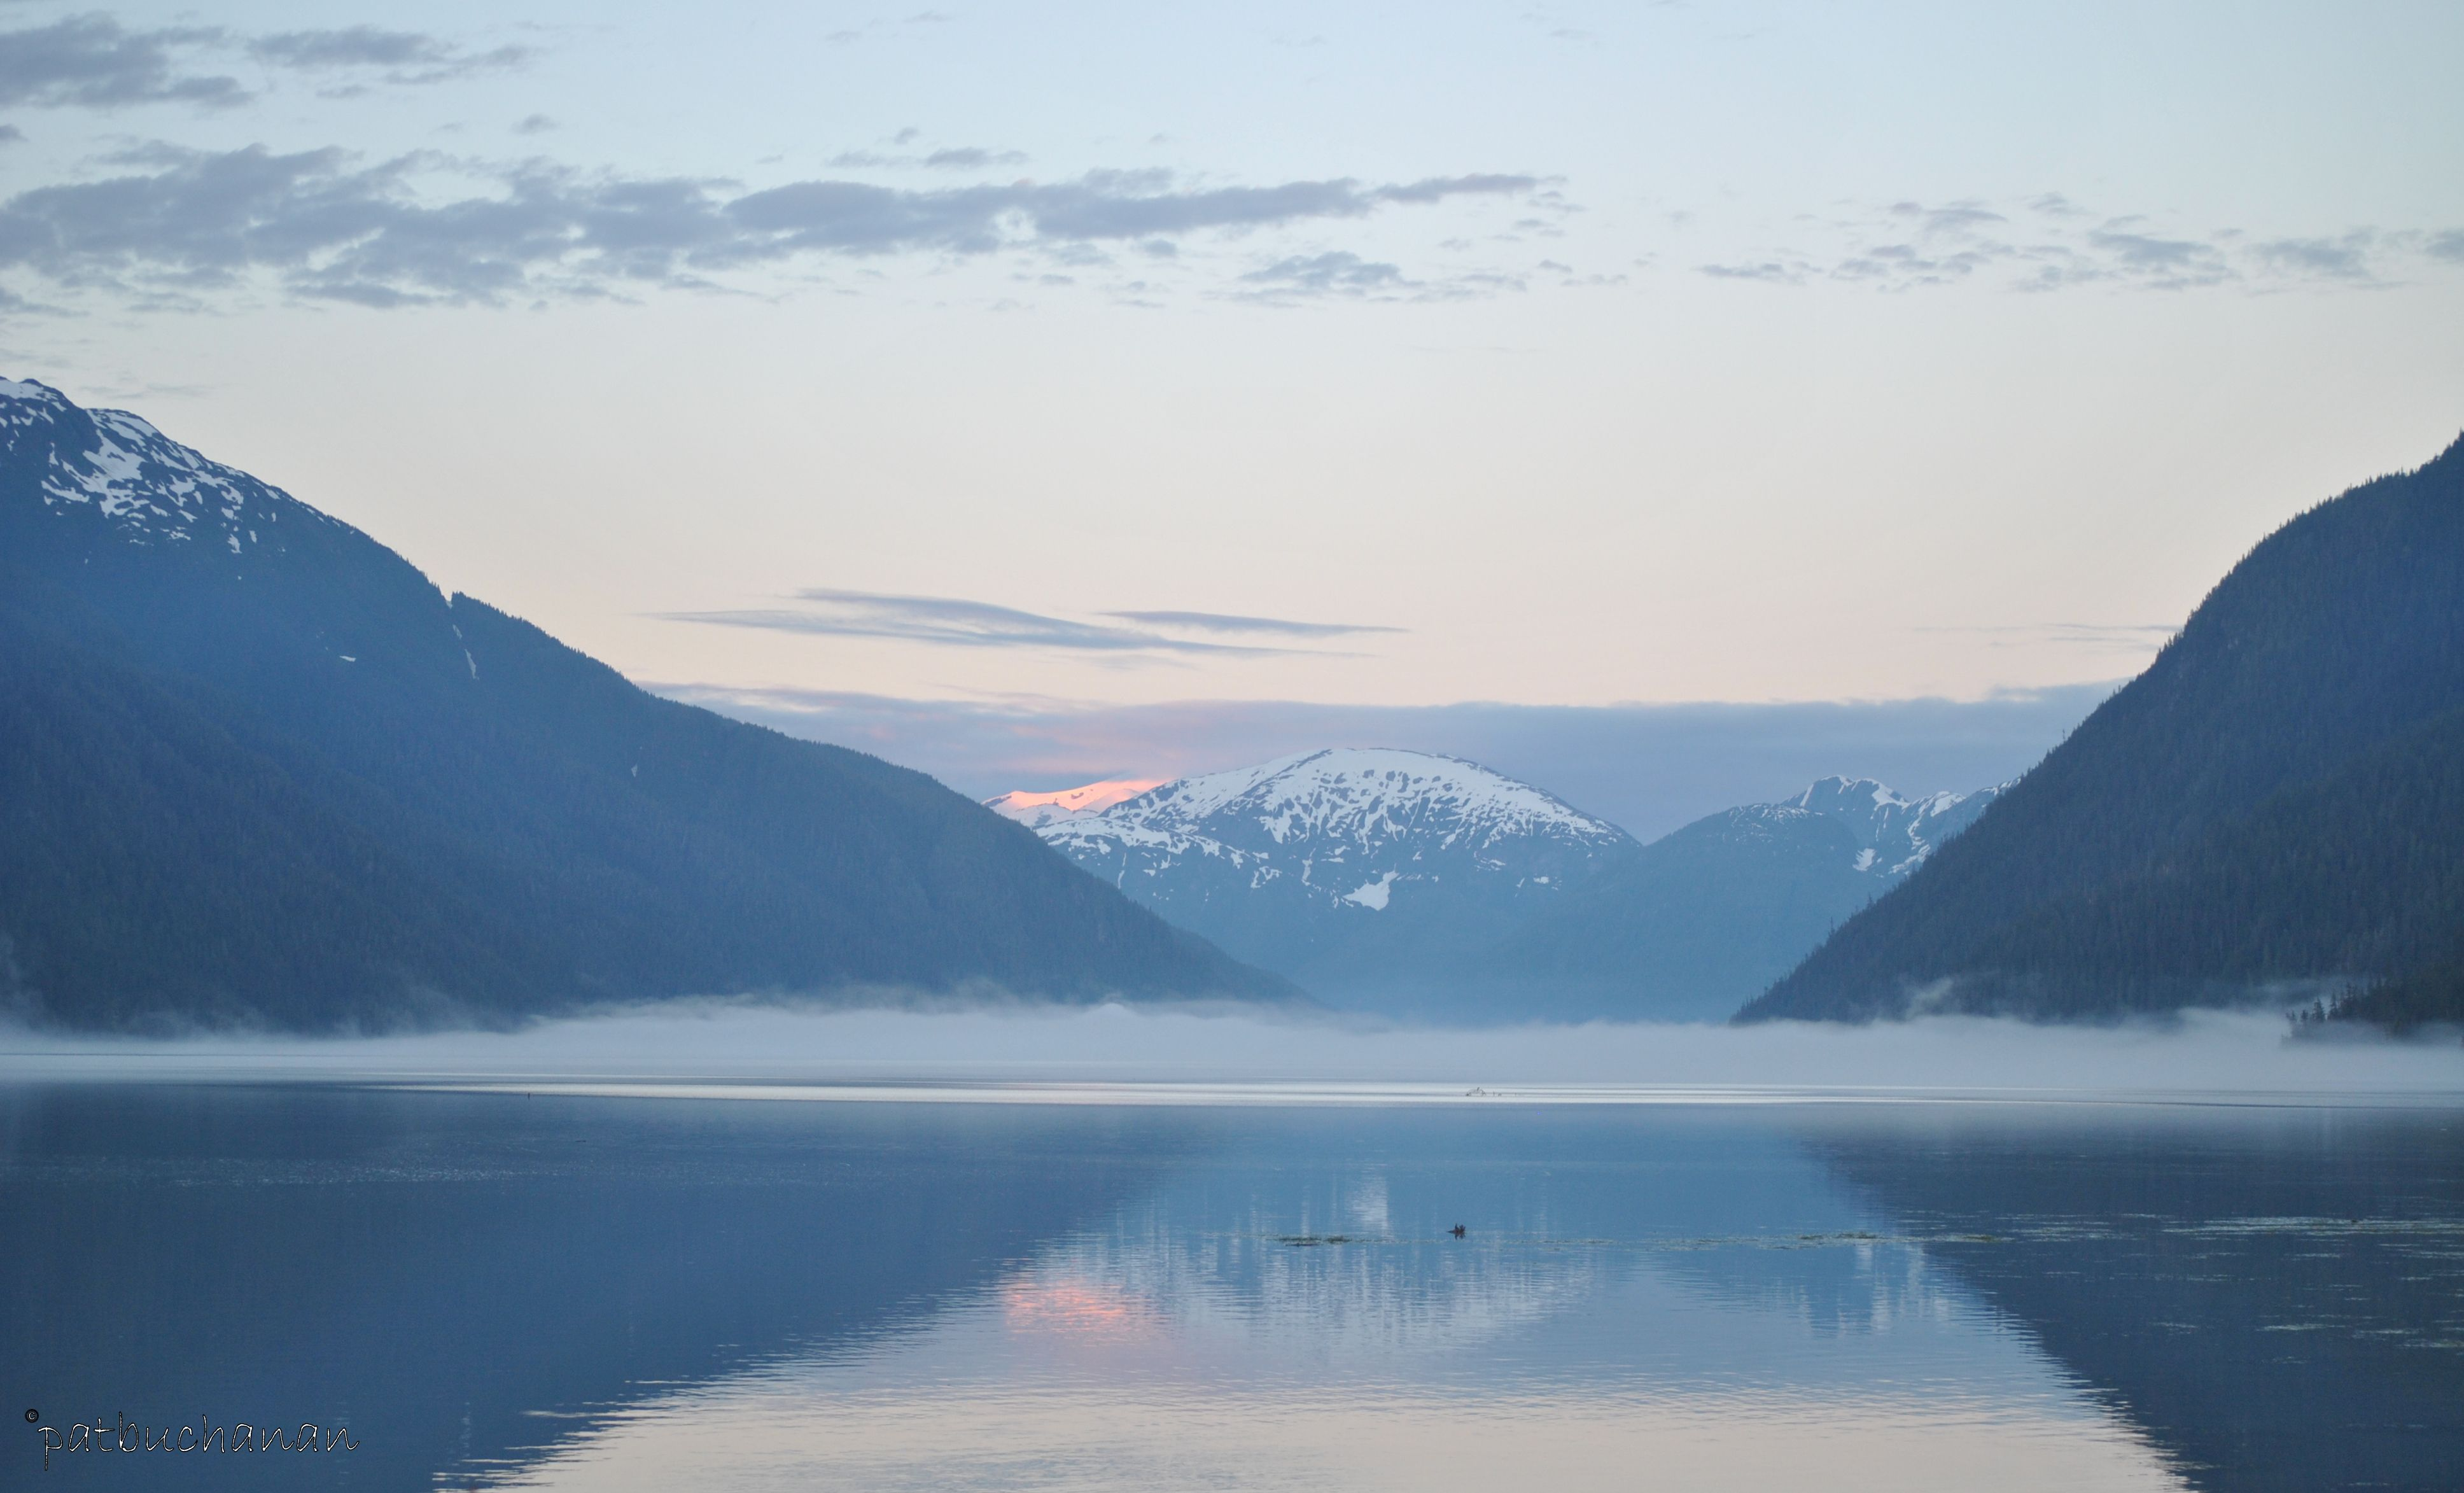 The Portland Canal a natural fjord at